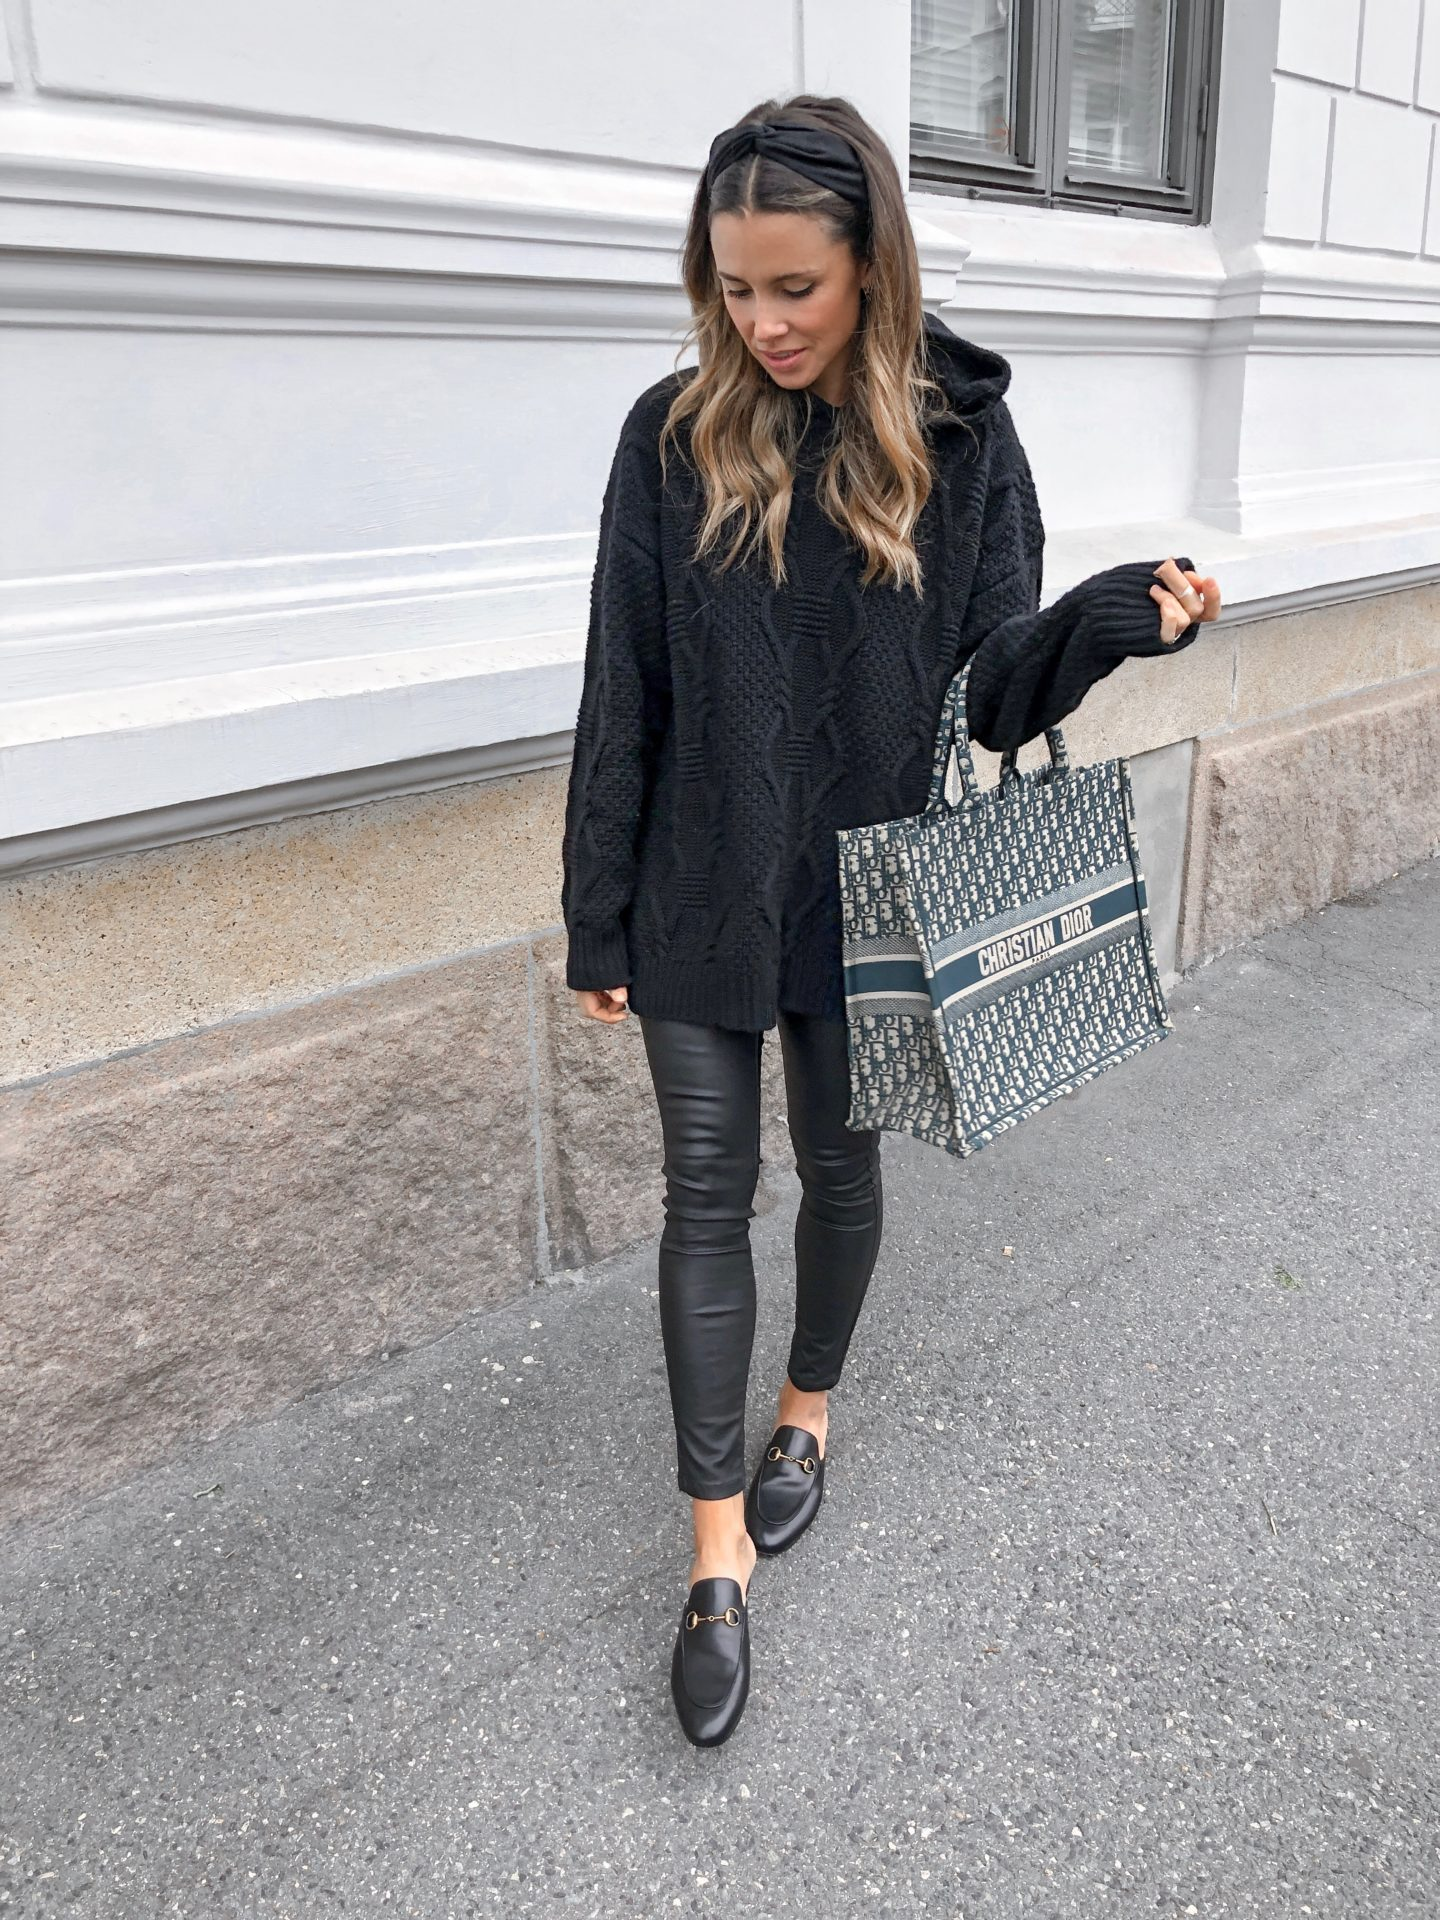 6 FAUX LEATHER PANTS UNDER £30